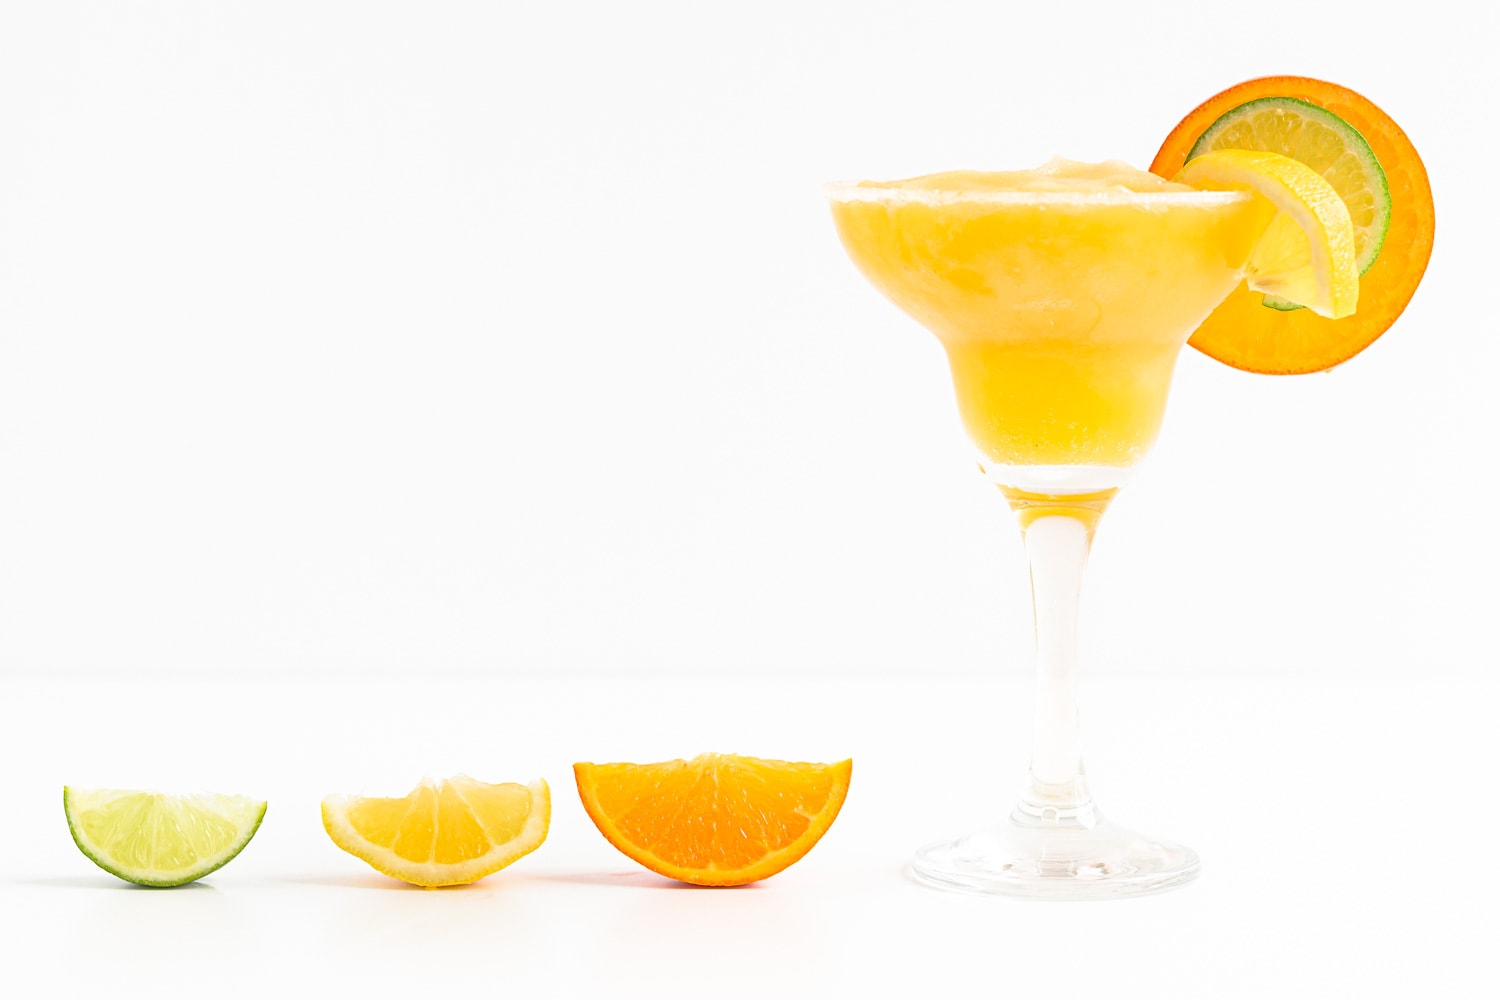 A wedge of lime, lemon and orange next to a glass of frozen citrus margarita.